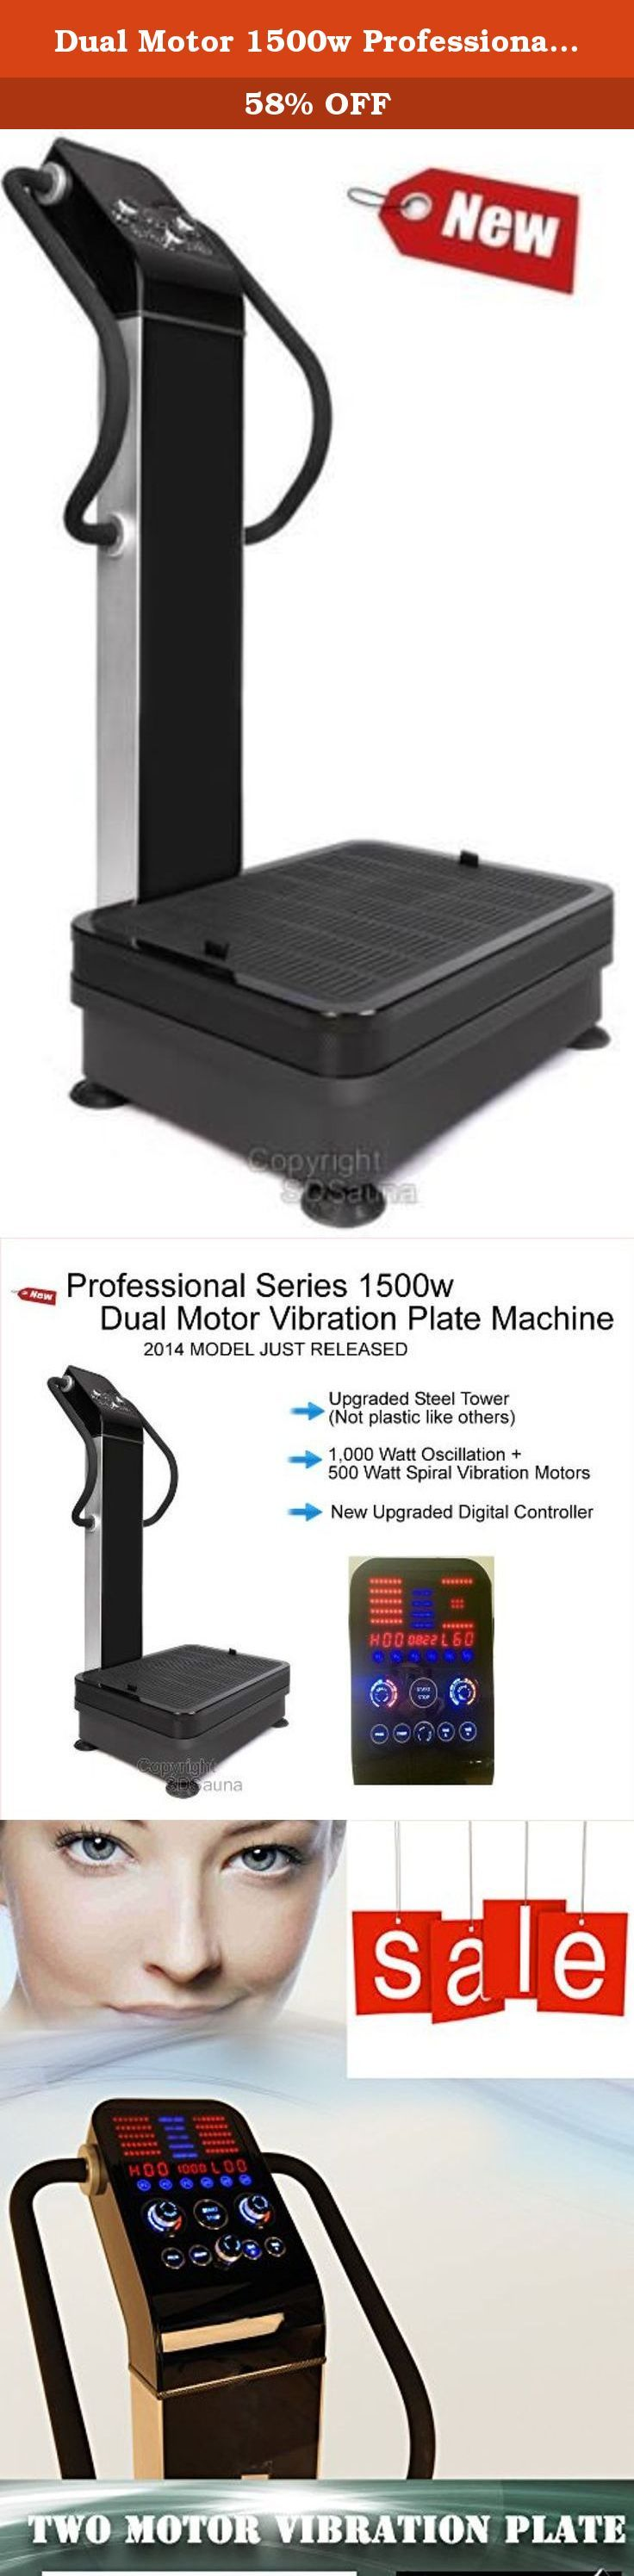 Dual Motor 1500w Professional Vibration Vibe Plate Exercise Fitness Machine. This new 2017 model has just been released to only a select few US distributors. The MSRP on these is $3,999, while some machines even go up to over $5,000! Upgraded steel body (not plastic), larger base, noiseless motors, and new digital display are just a few of the upgrades. Arm straps included for upper body workouts. Features / Specifications: 110v, 60hz for operation within US and Canada. Just plugs into…